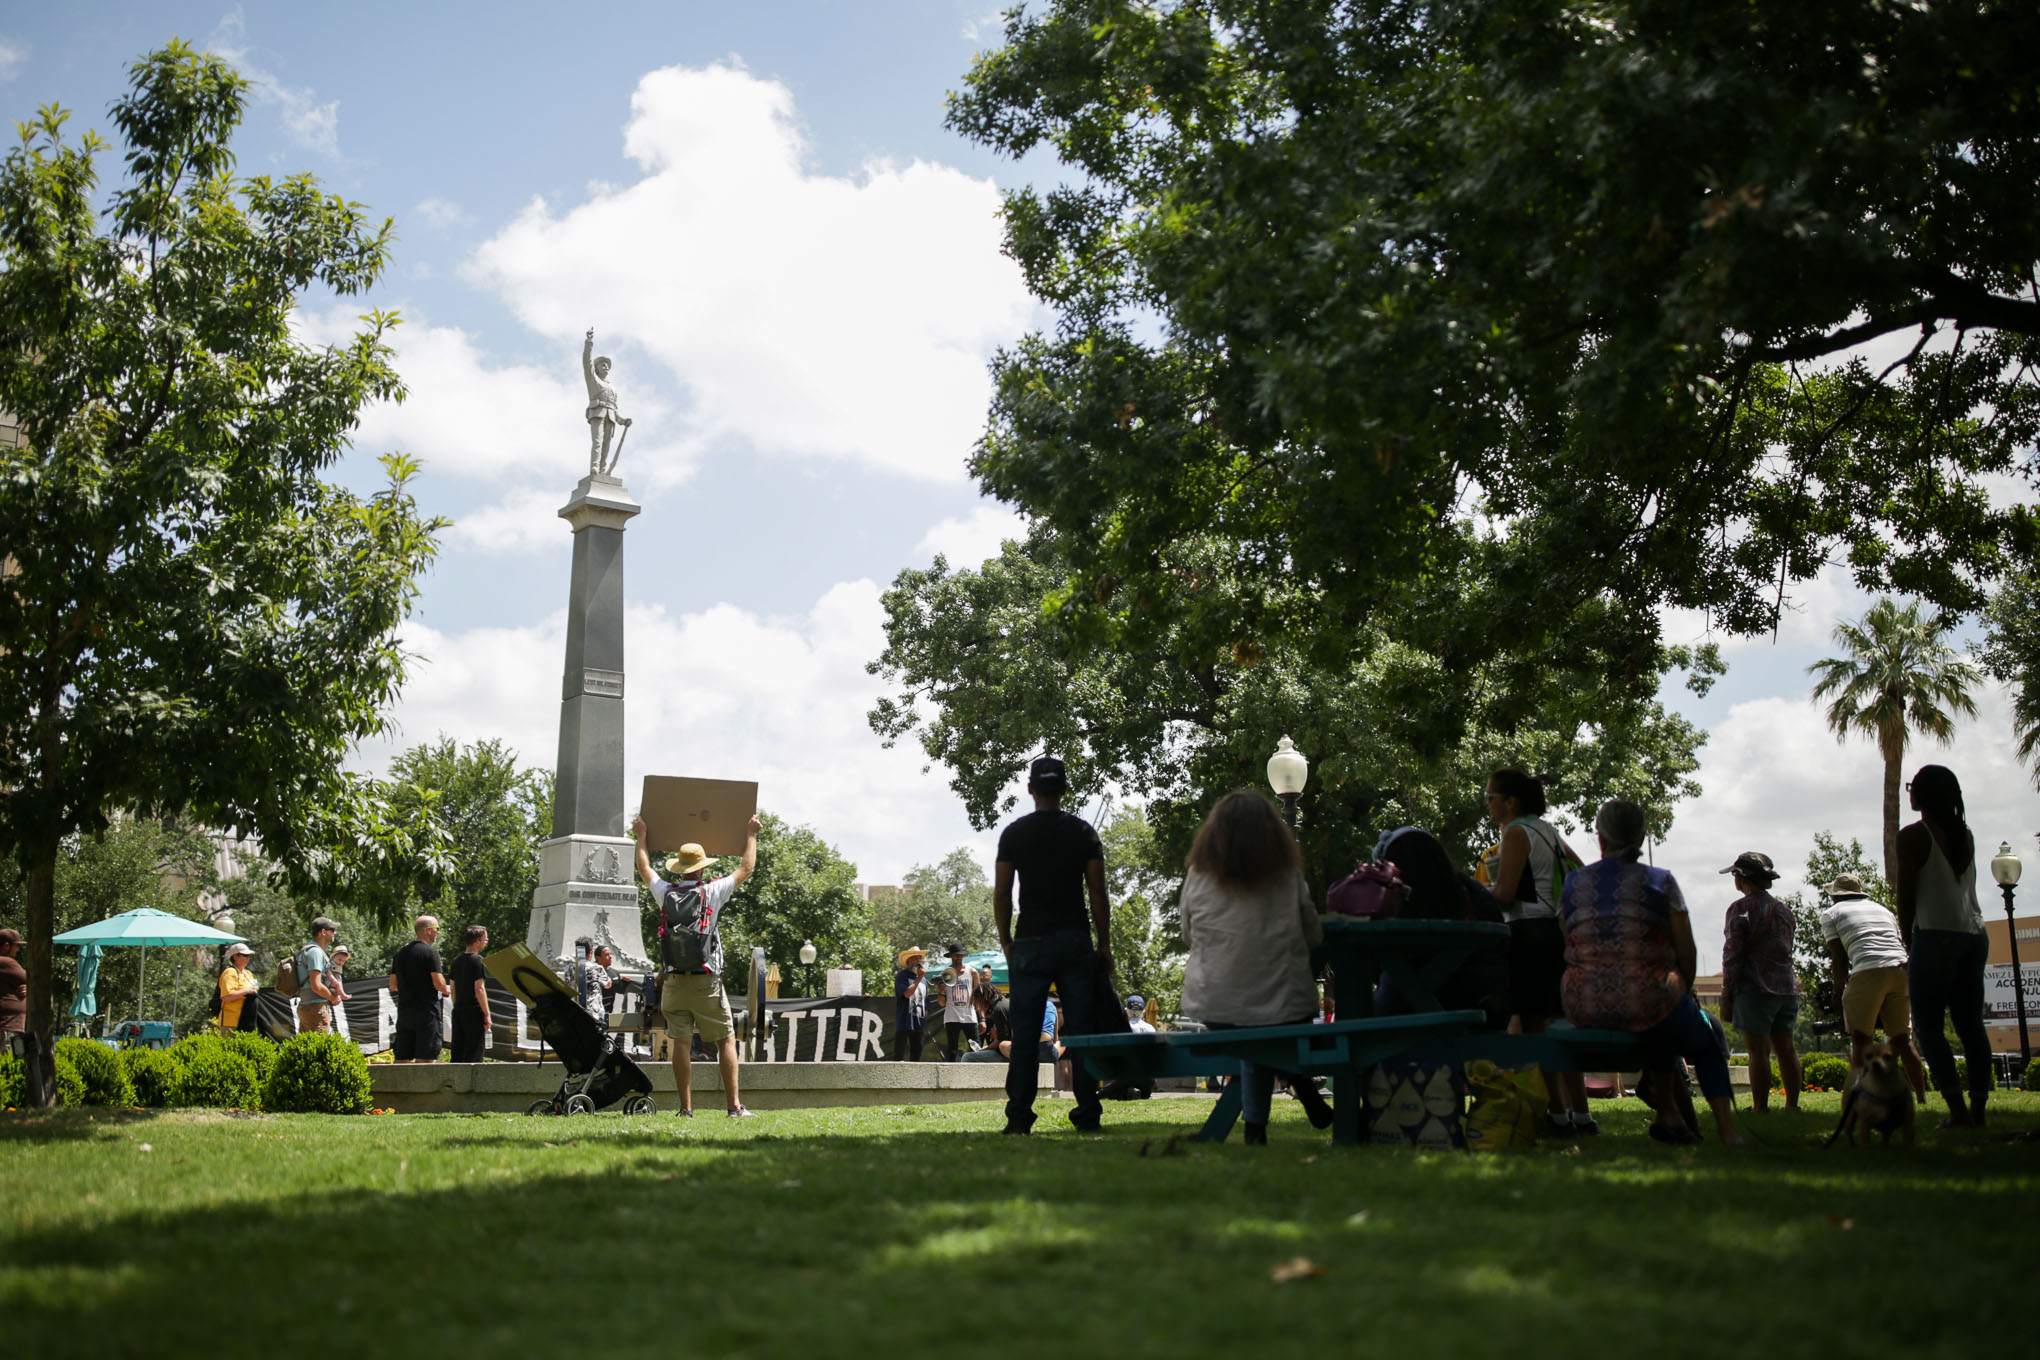 The Confederate monument raises 40 feet above the ground and is centered directly in the middle of Travis Park in downtown San Antonio.